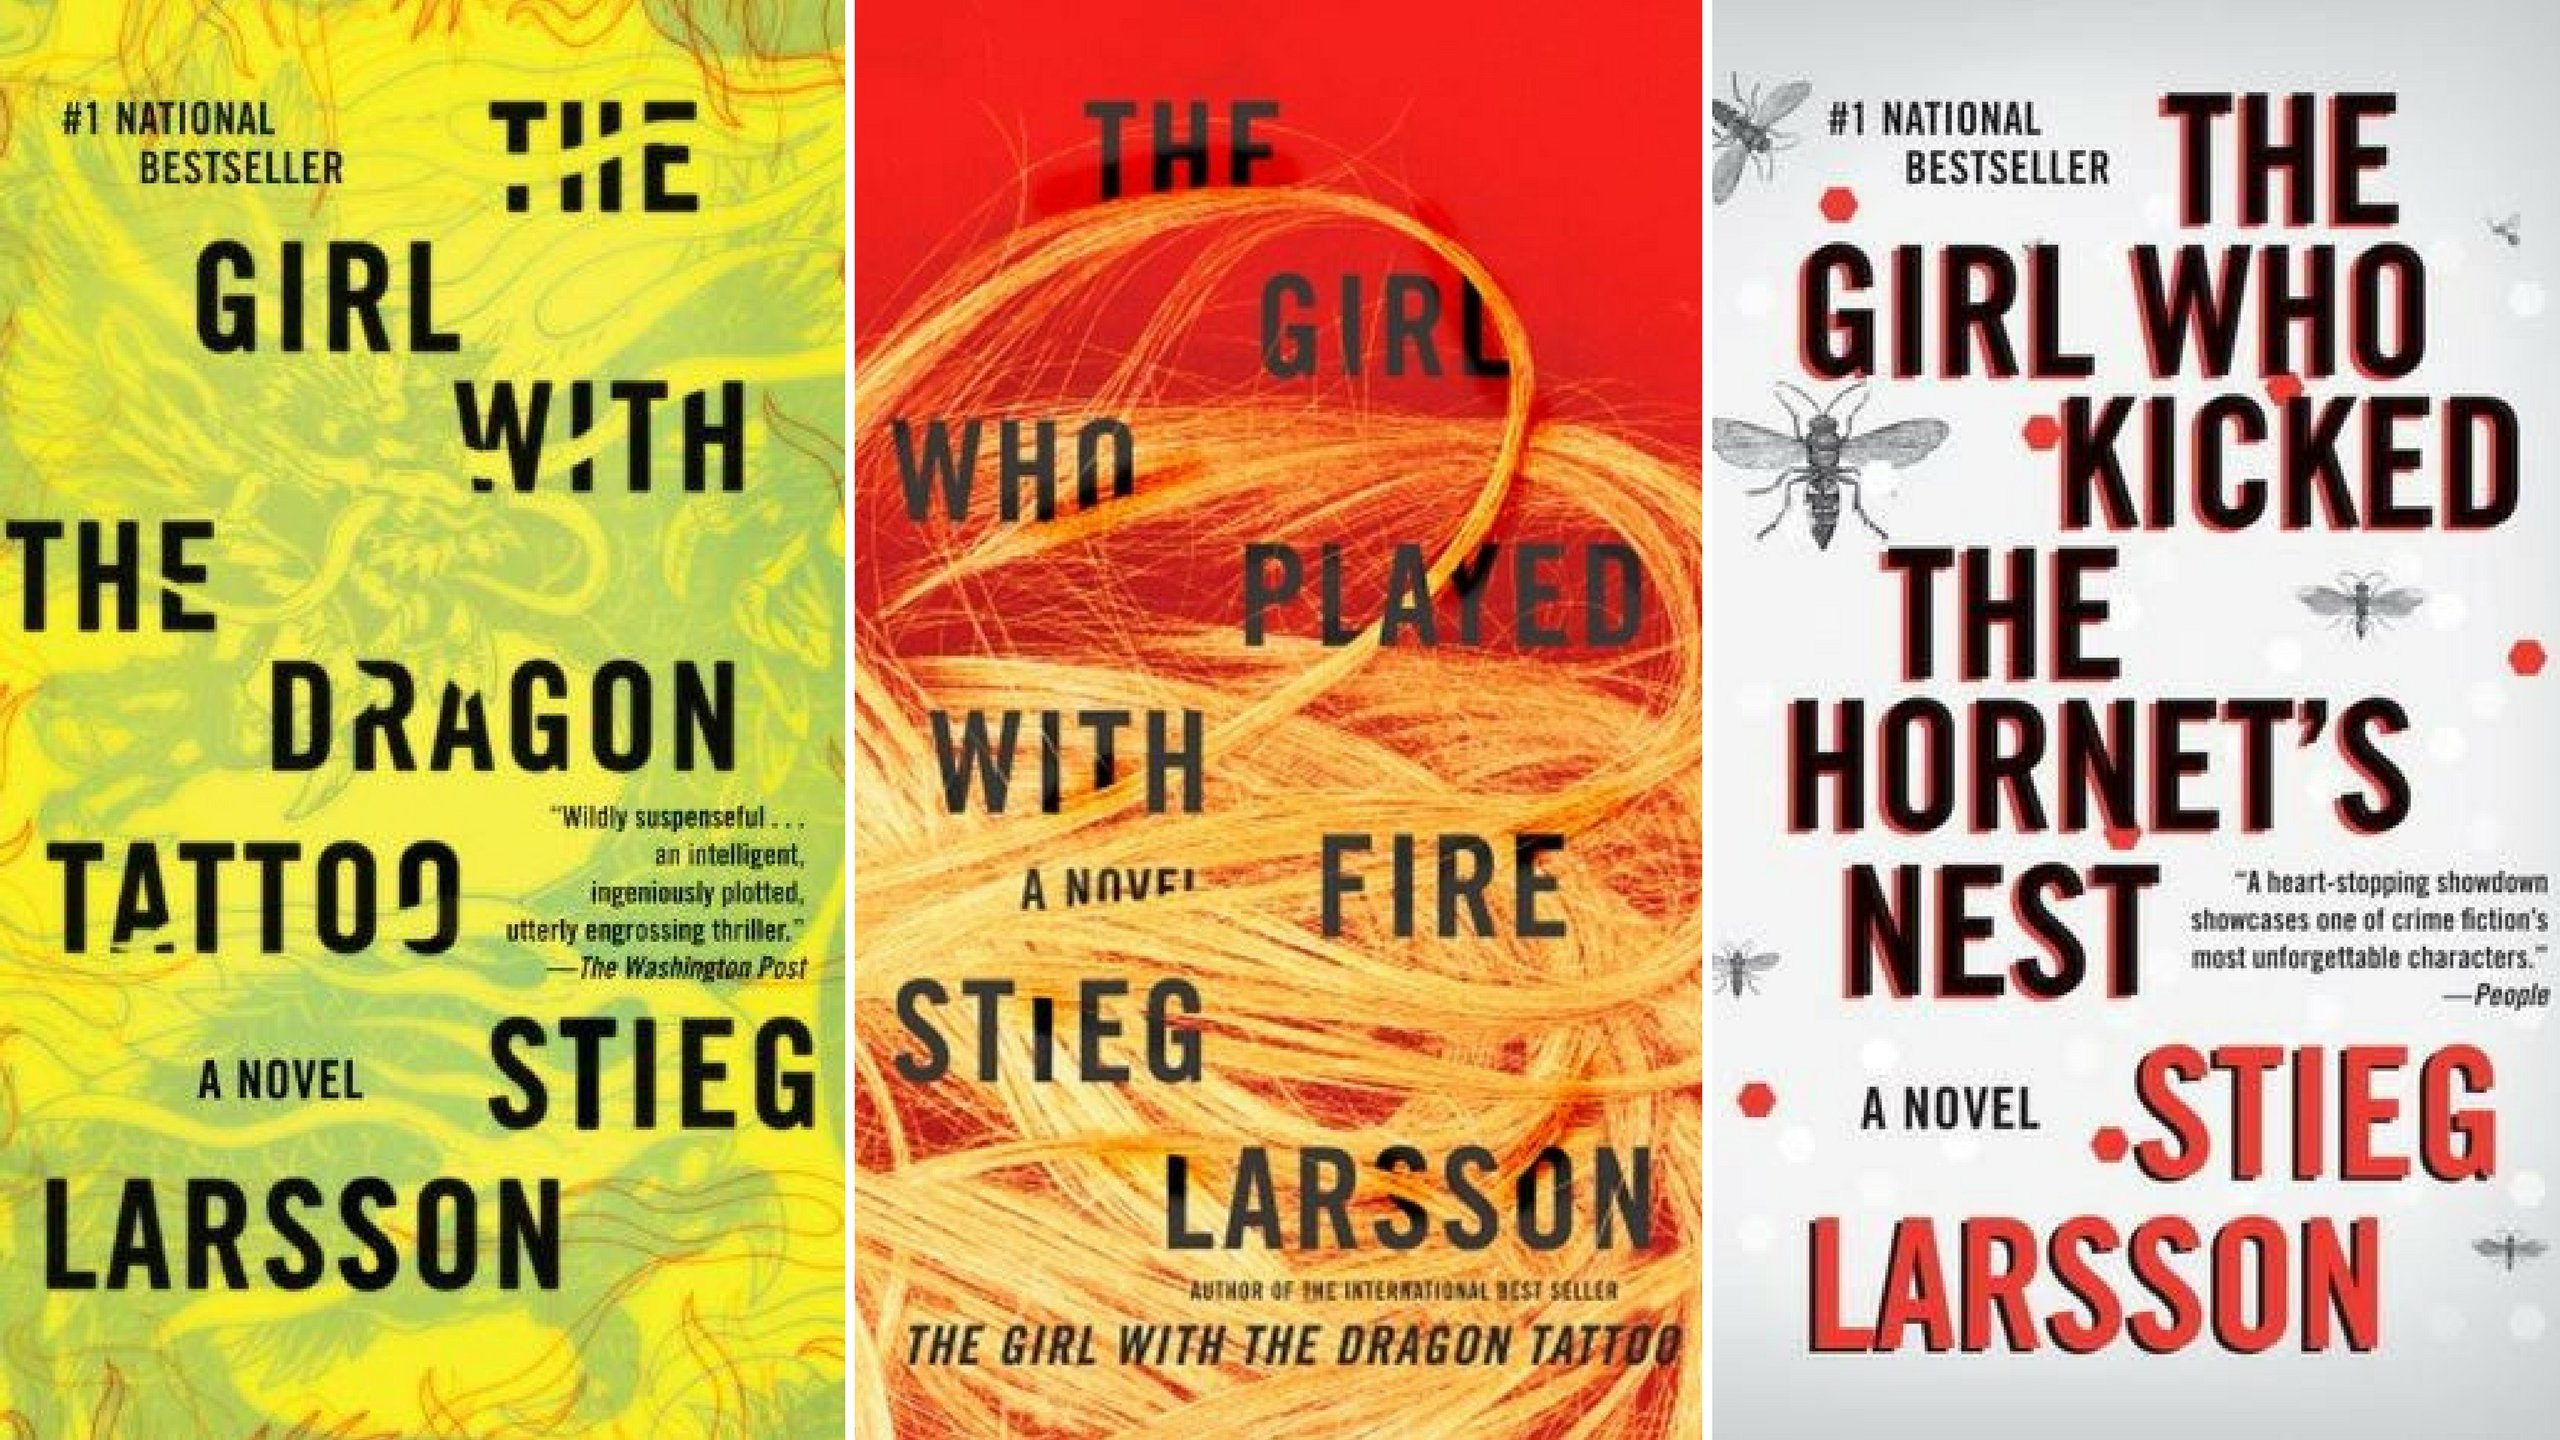 covers of Stieg Larsson series